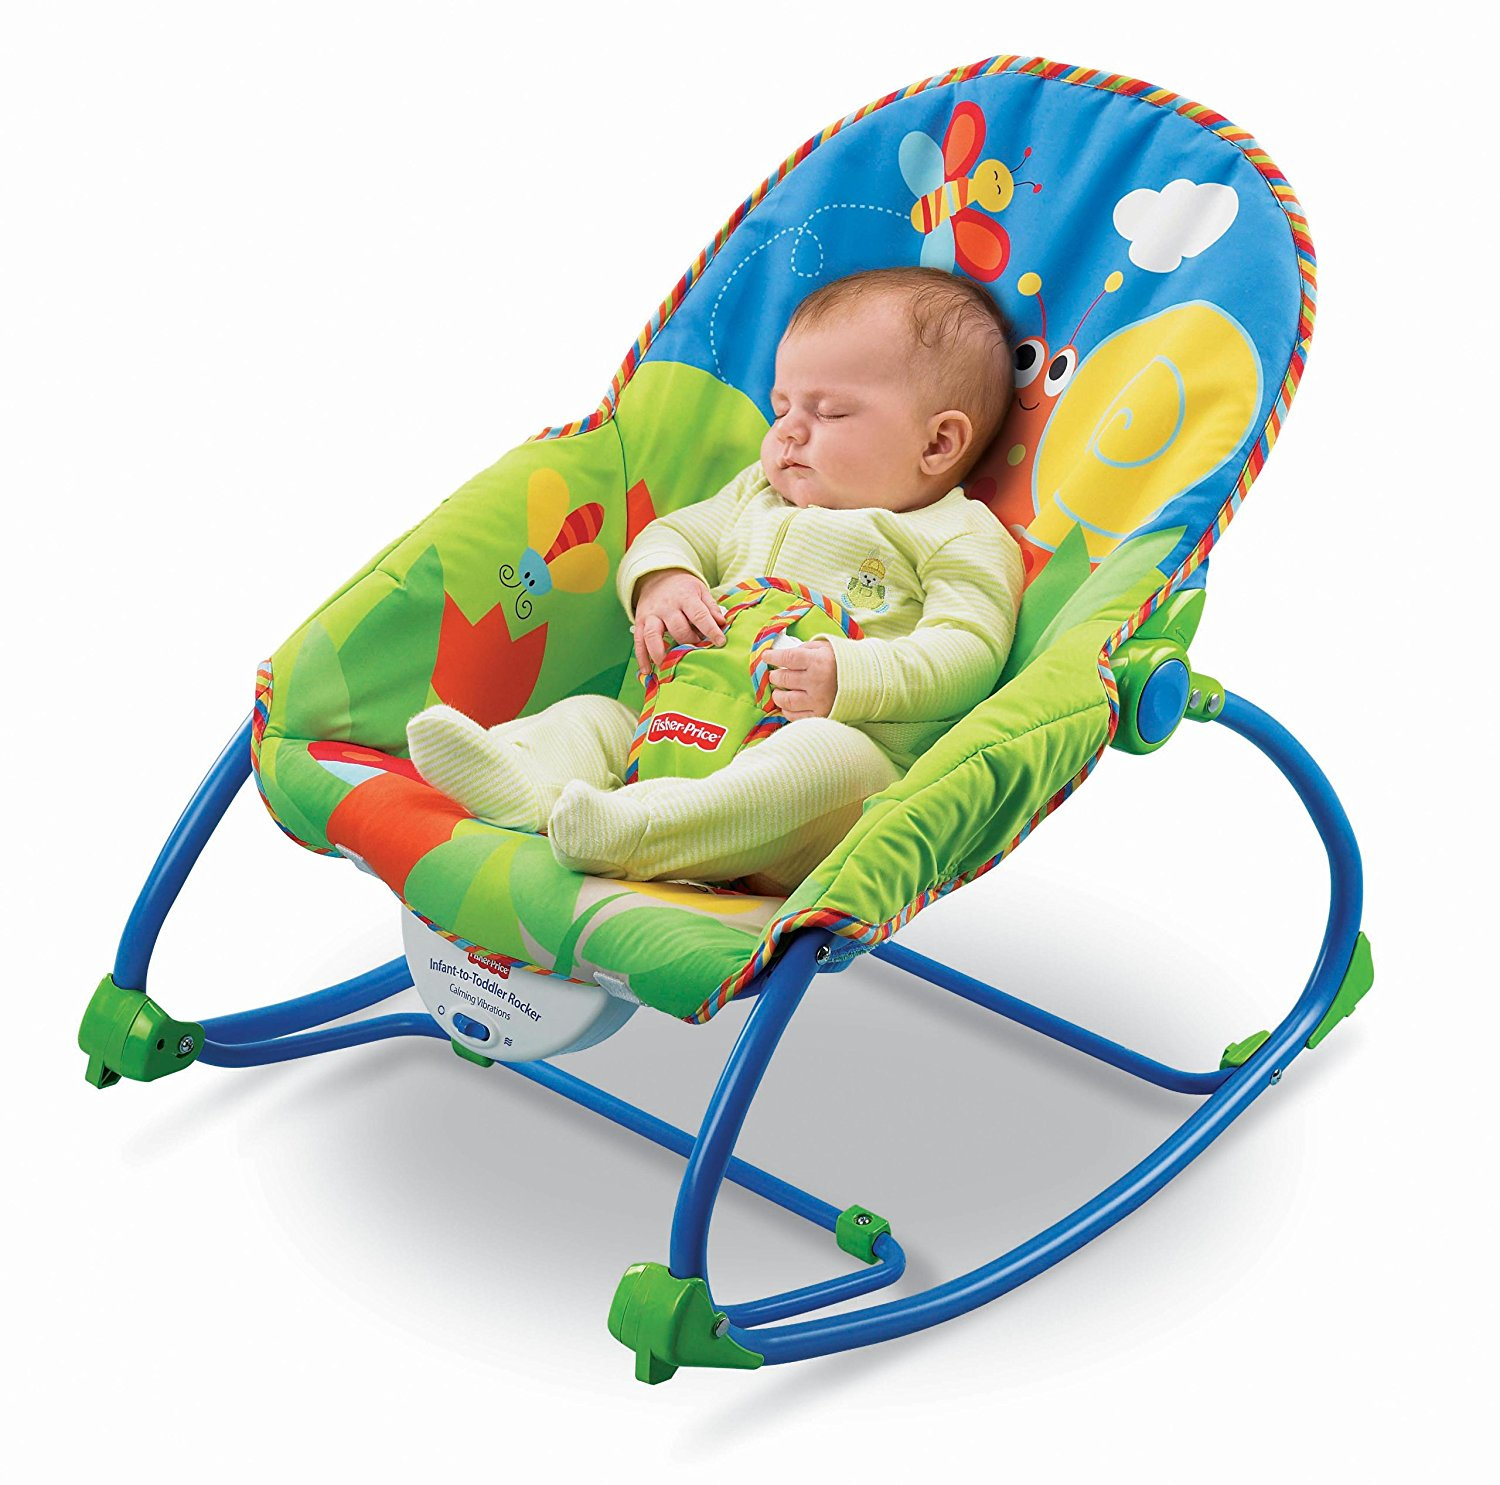 Furniture Home: Furniture Home Striking Baby Rocking Chair Images ...